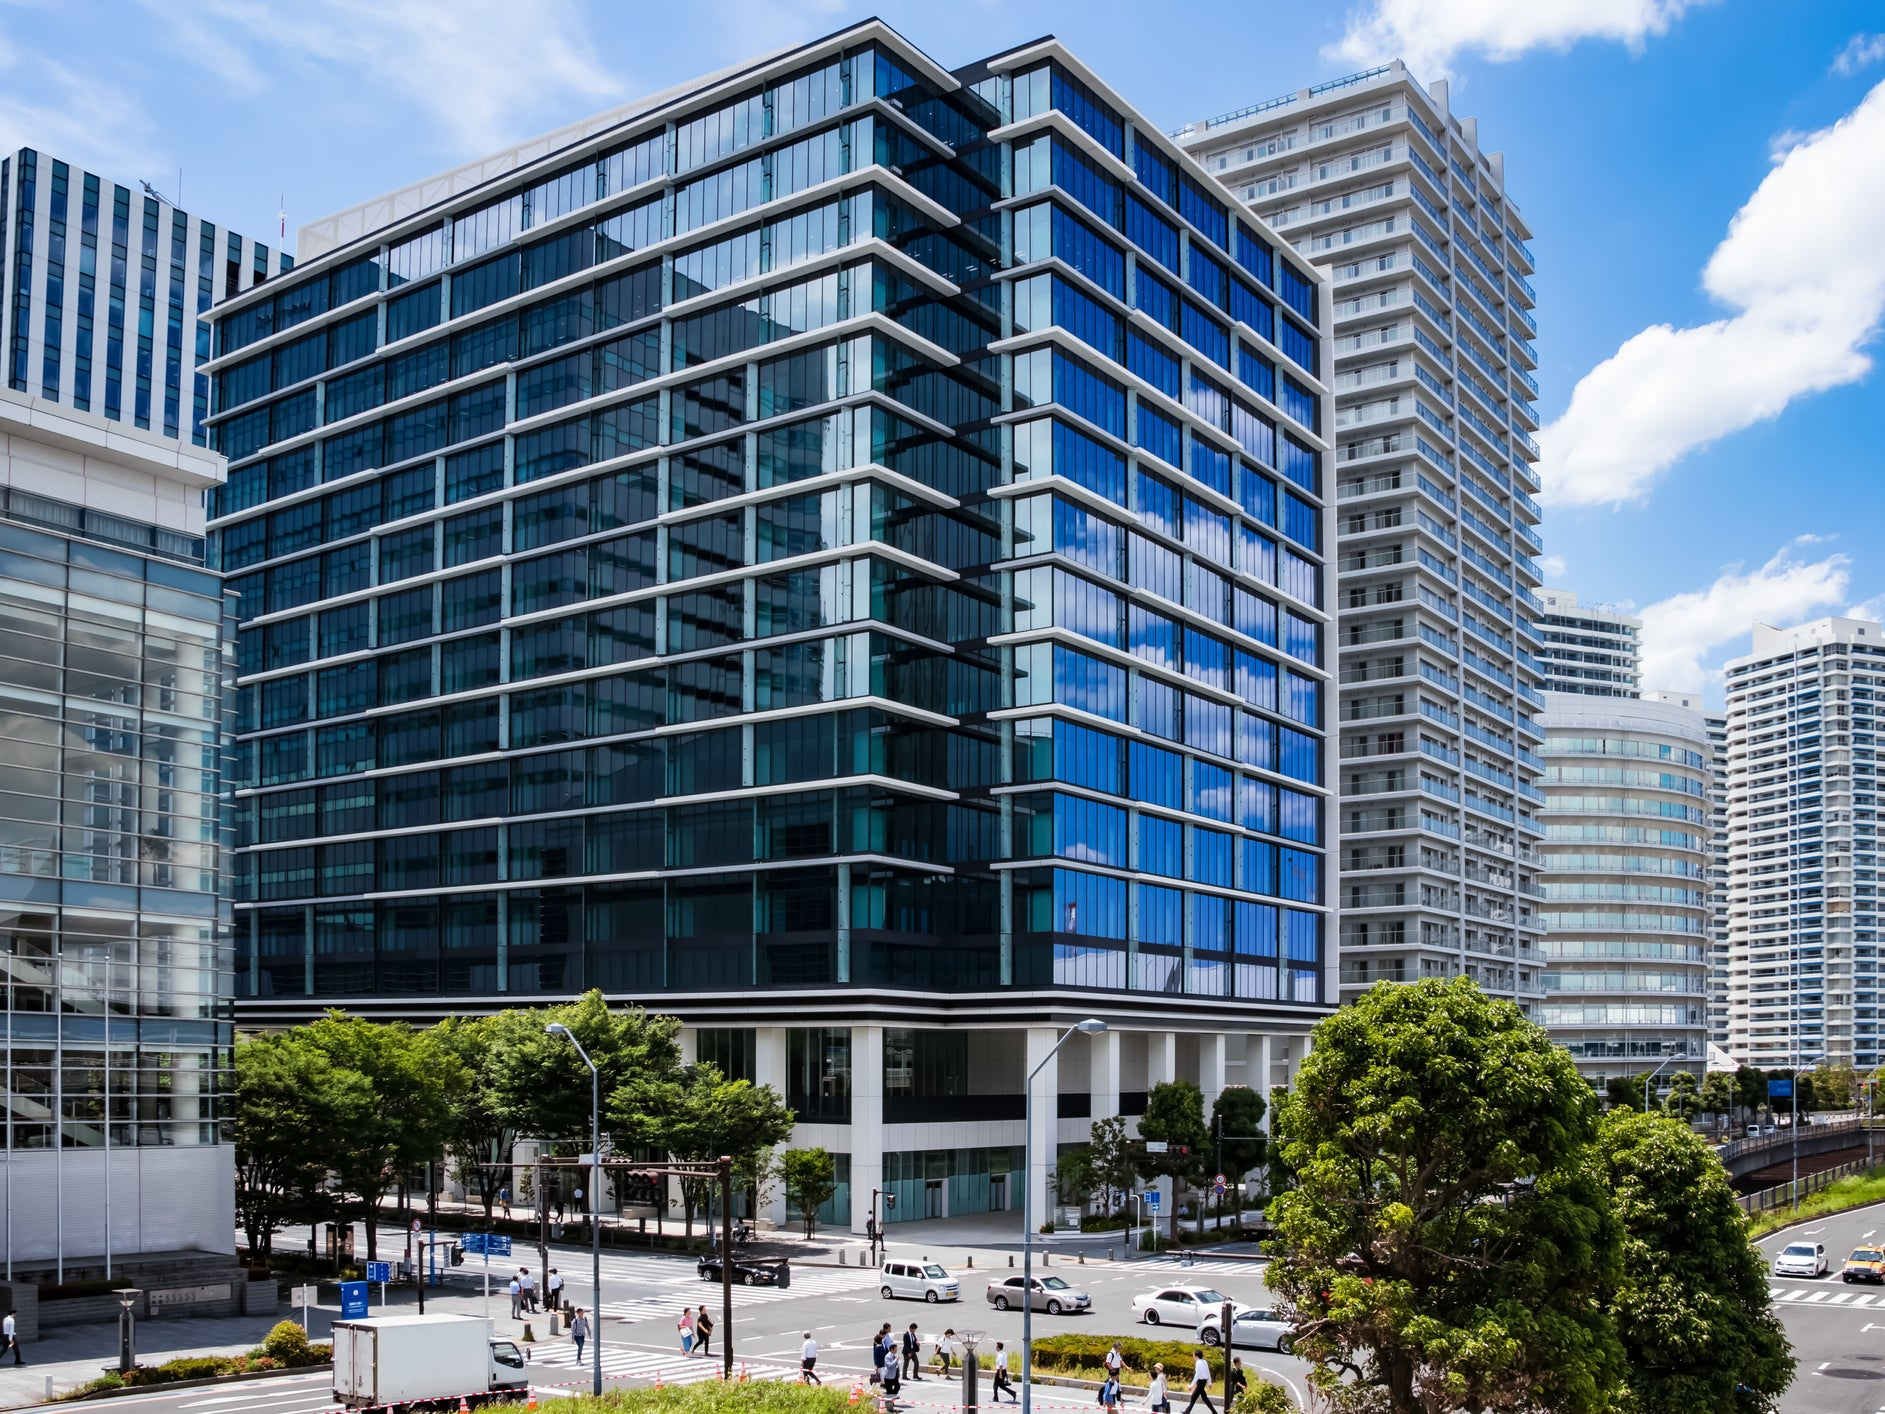 How To Invest in Office Buildings | Millionacres